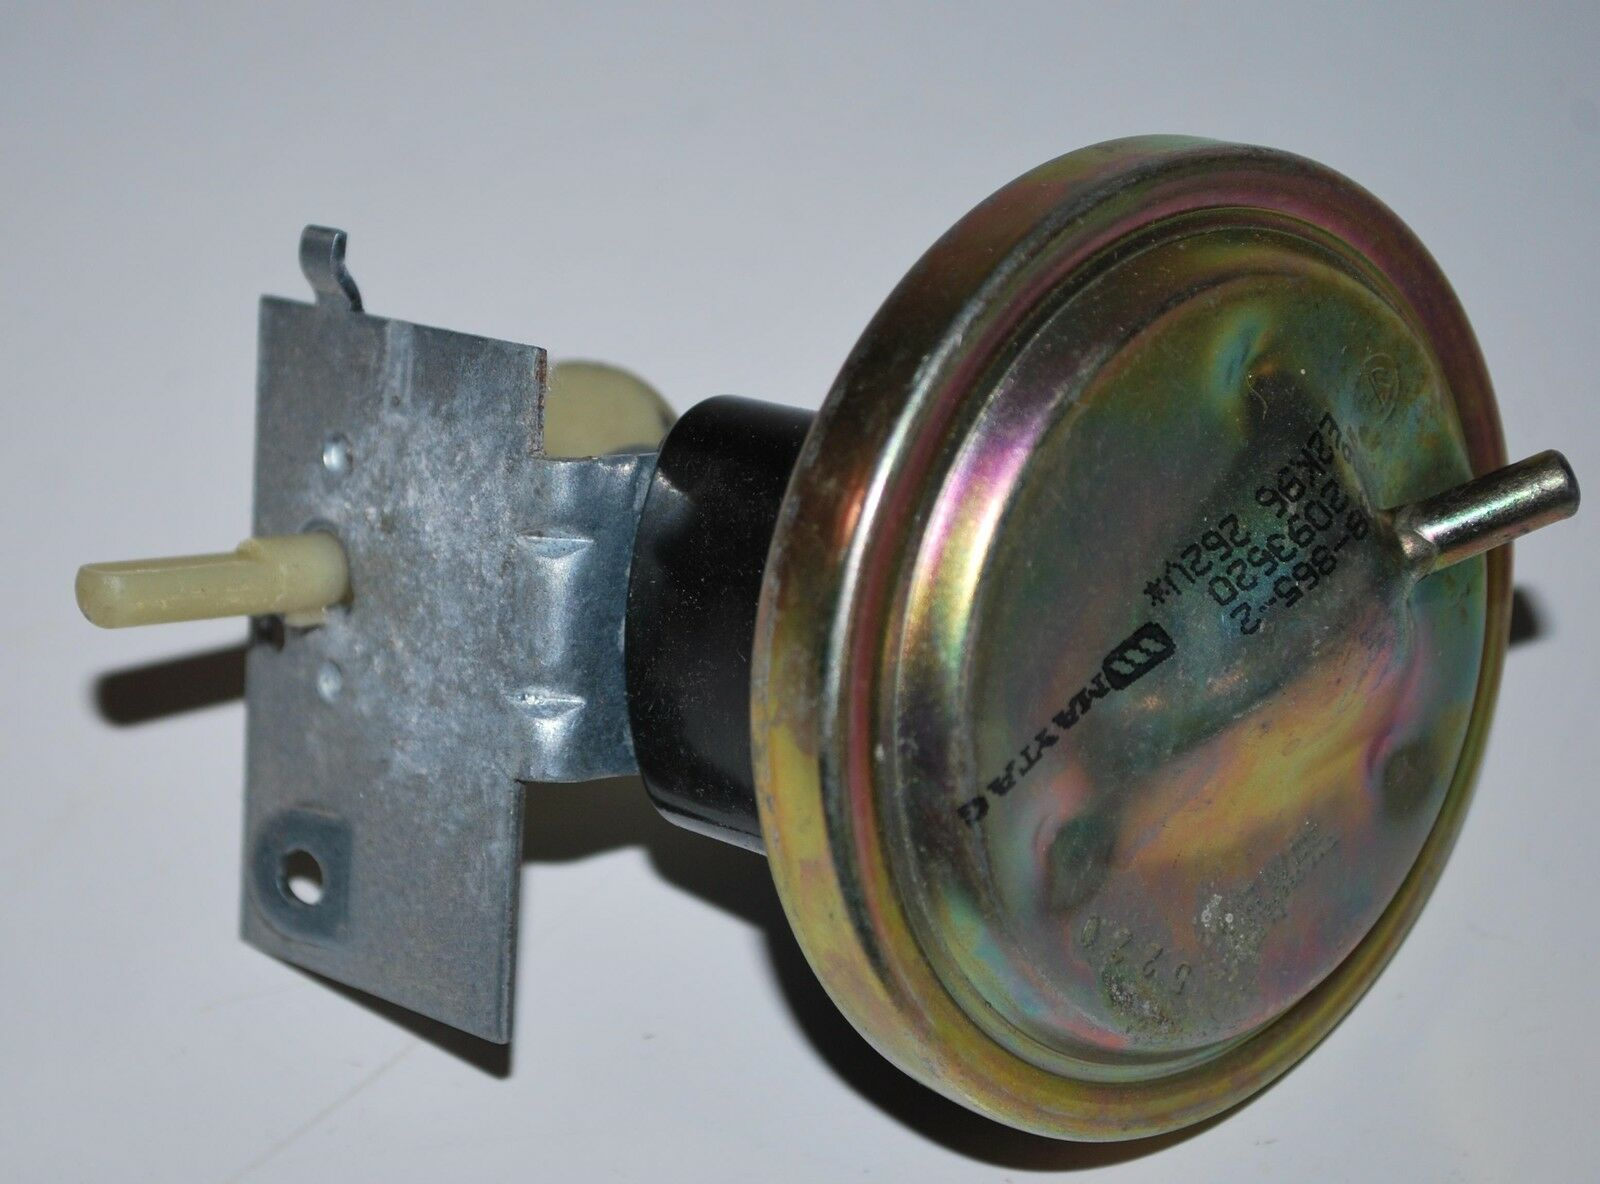 Maytag Washer Water Level Switch 6 2082010 or 62082010 or 738-810-2